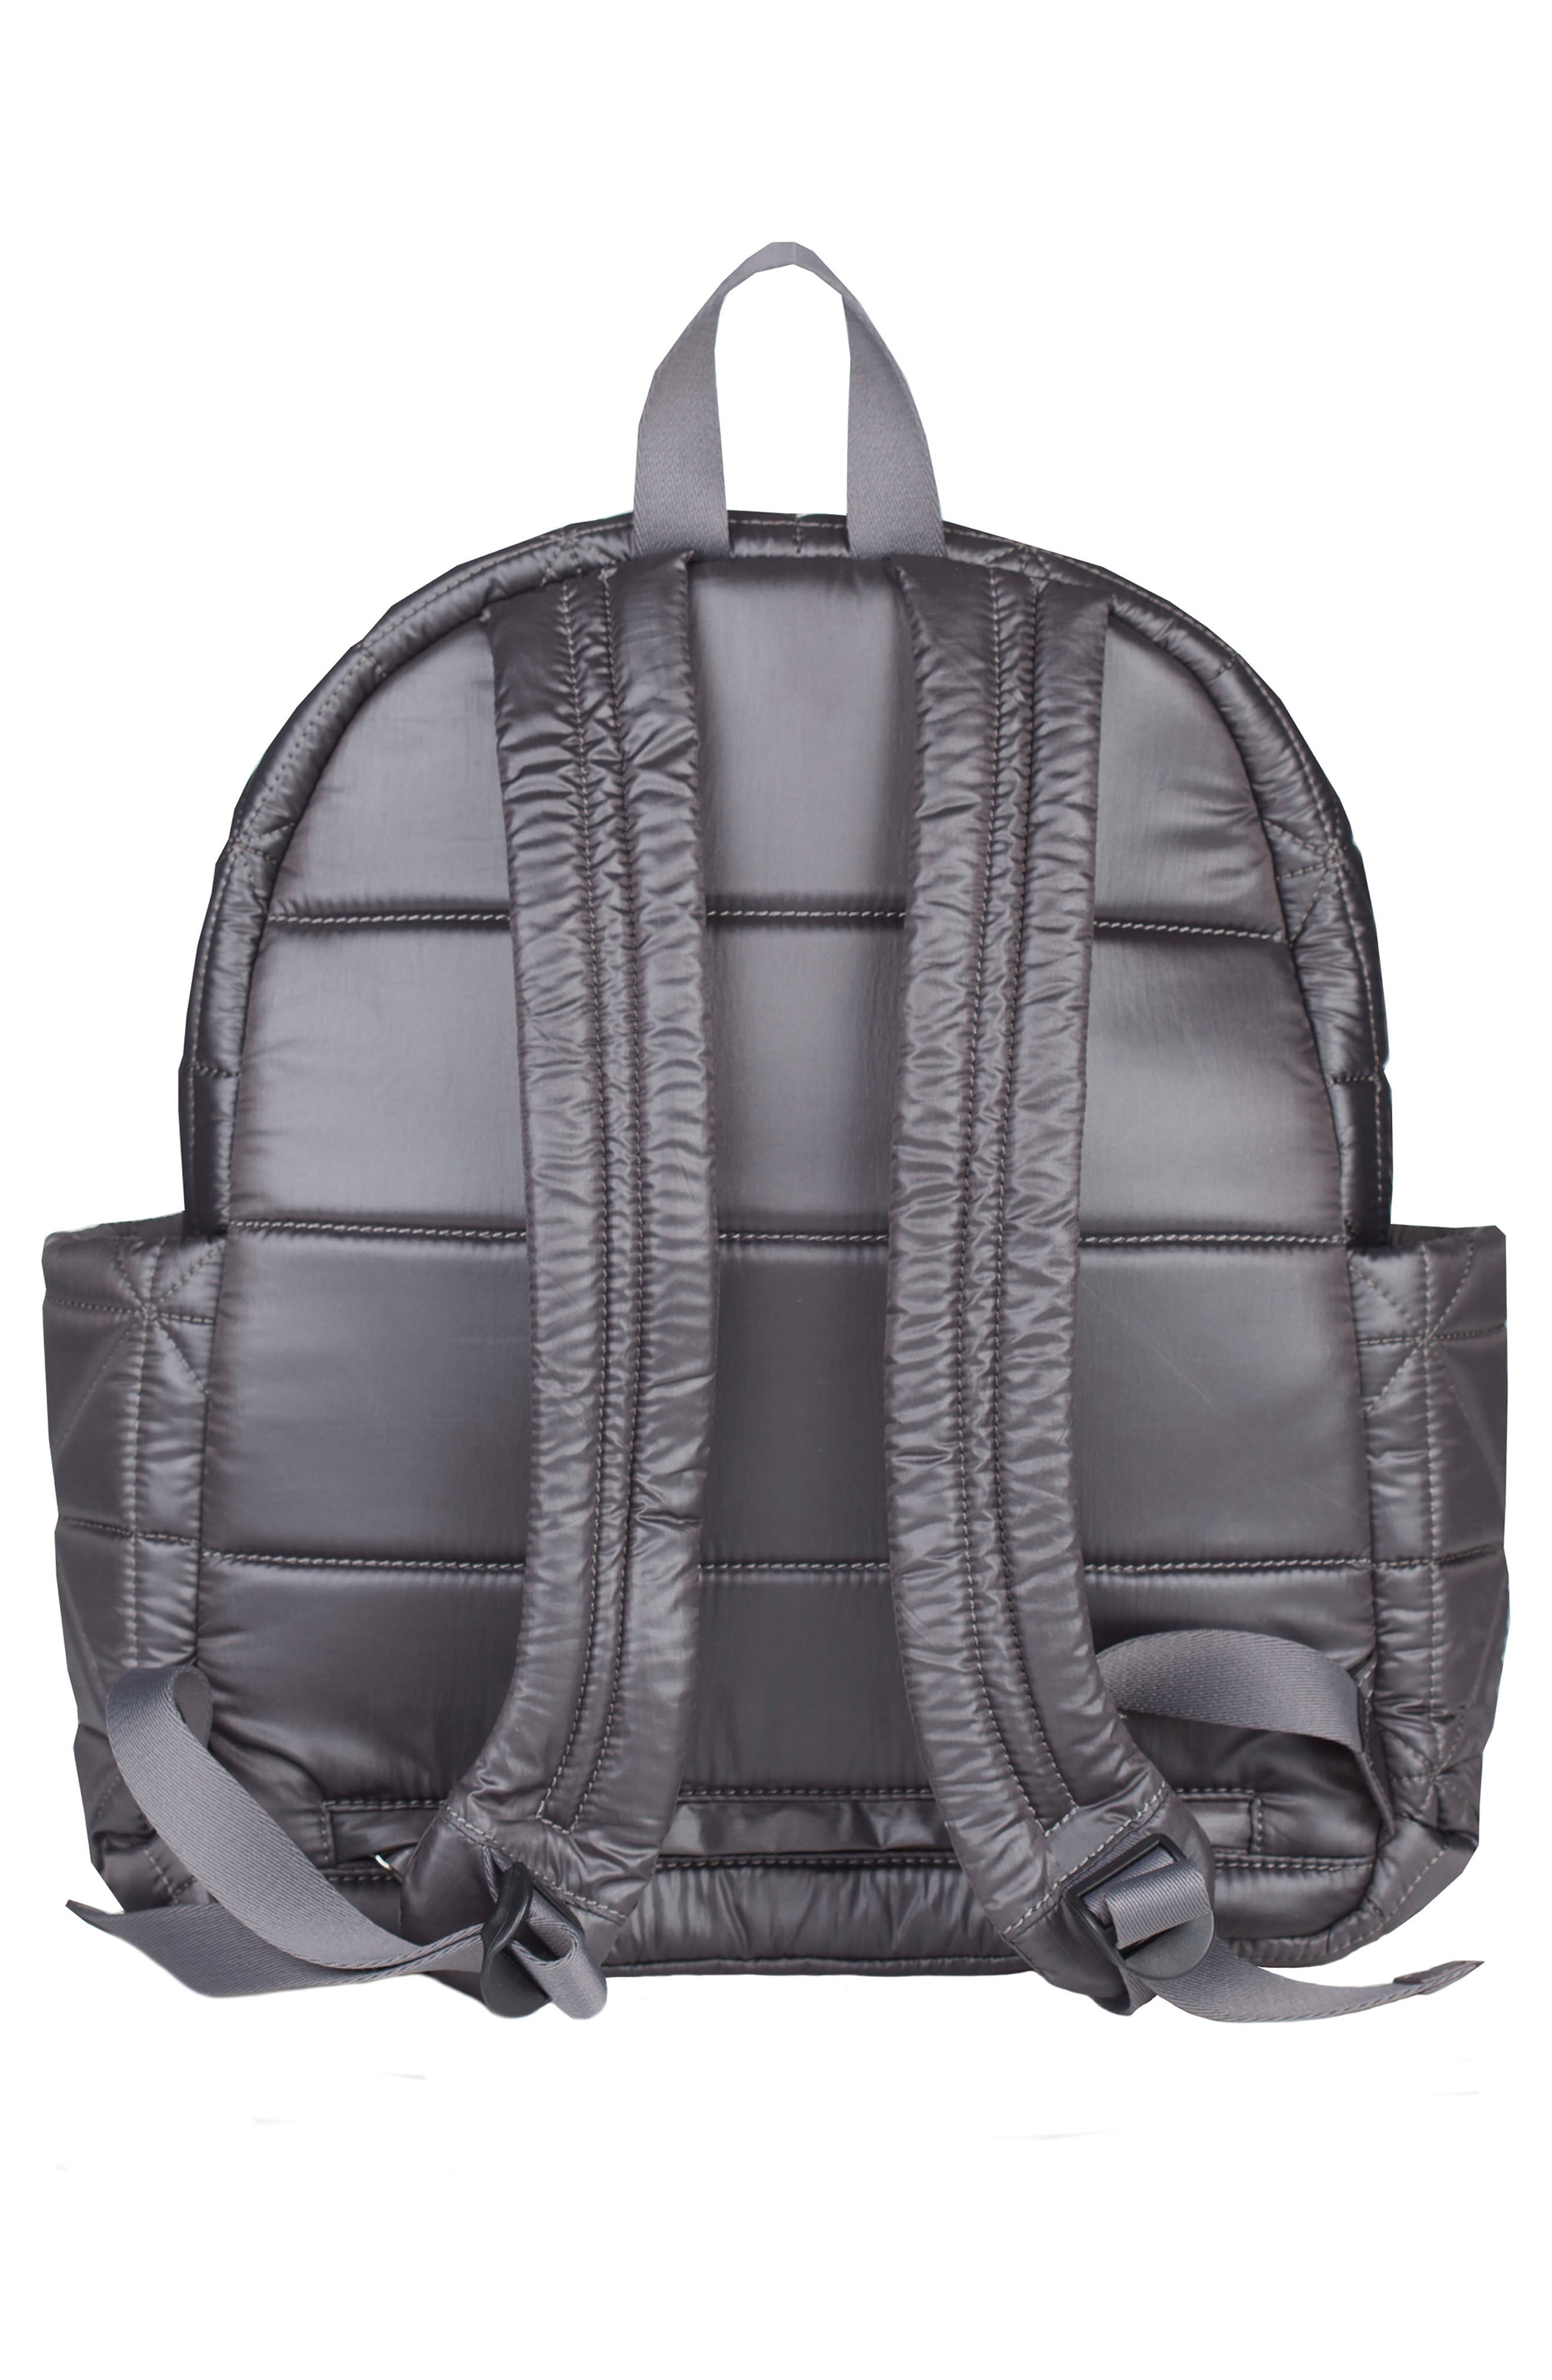 Companion Quilted Nylon Diaper Backpack,                             Alternate thumbnail 2, color,                             PLATINUM